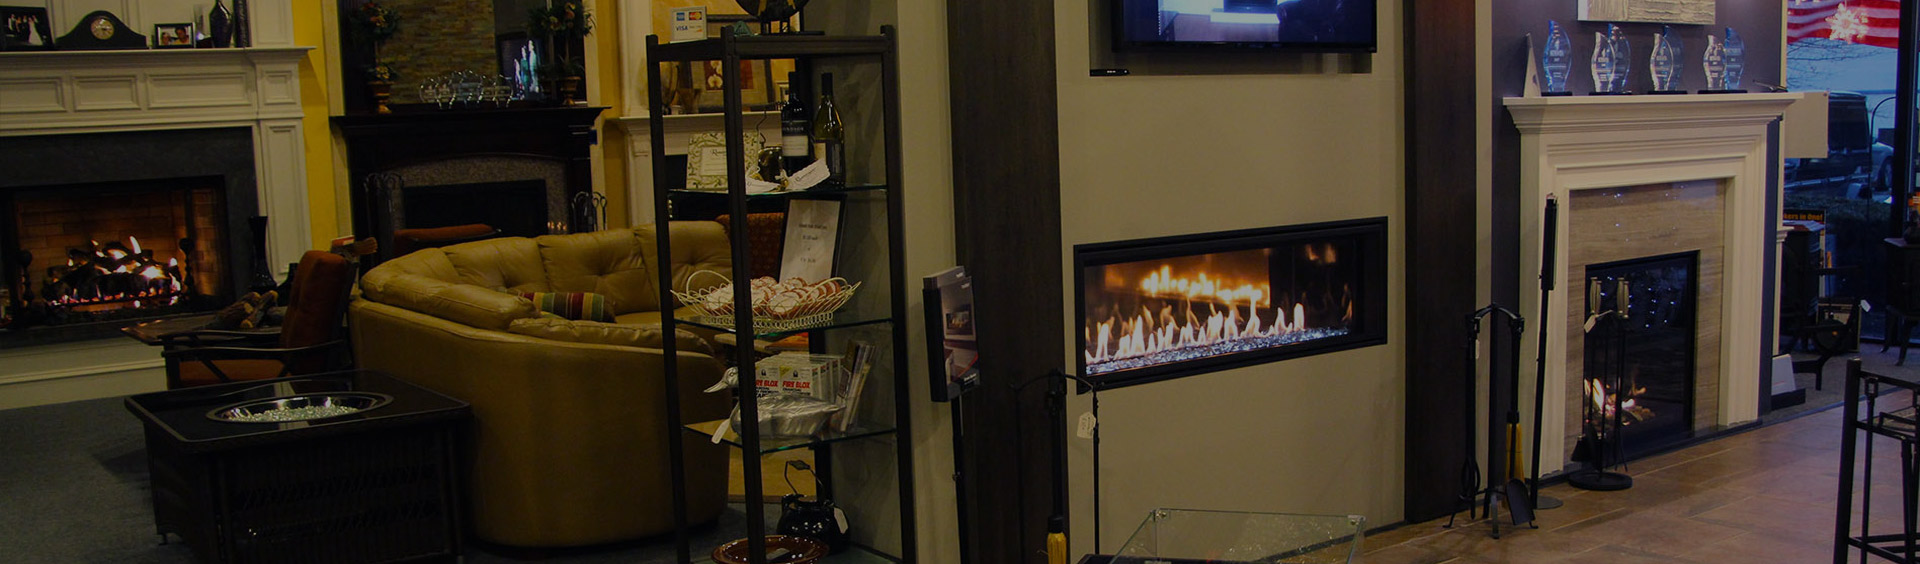 fireplaces u0026 fireplace store fireplace company in south jersey